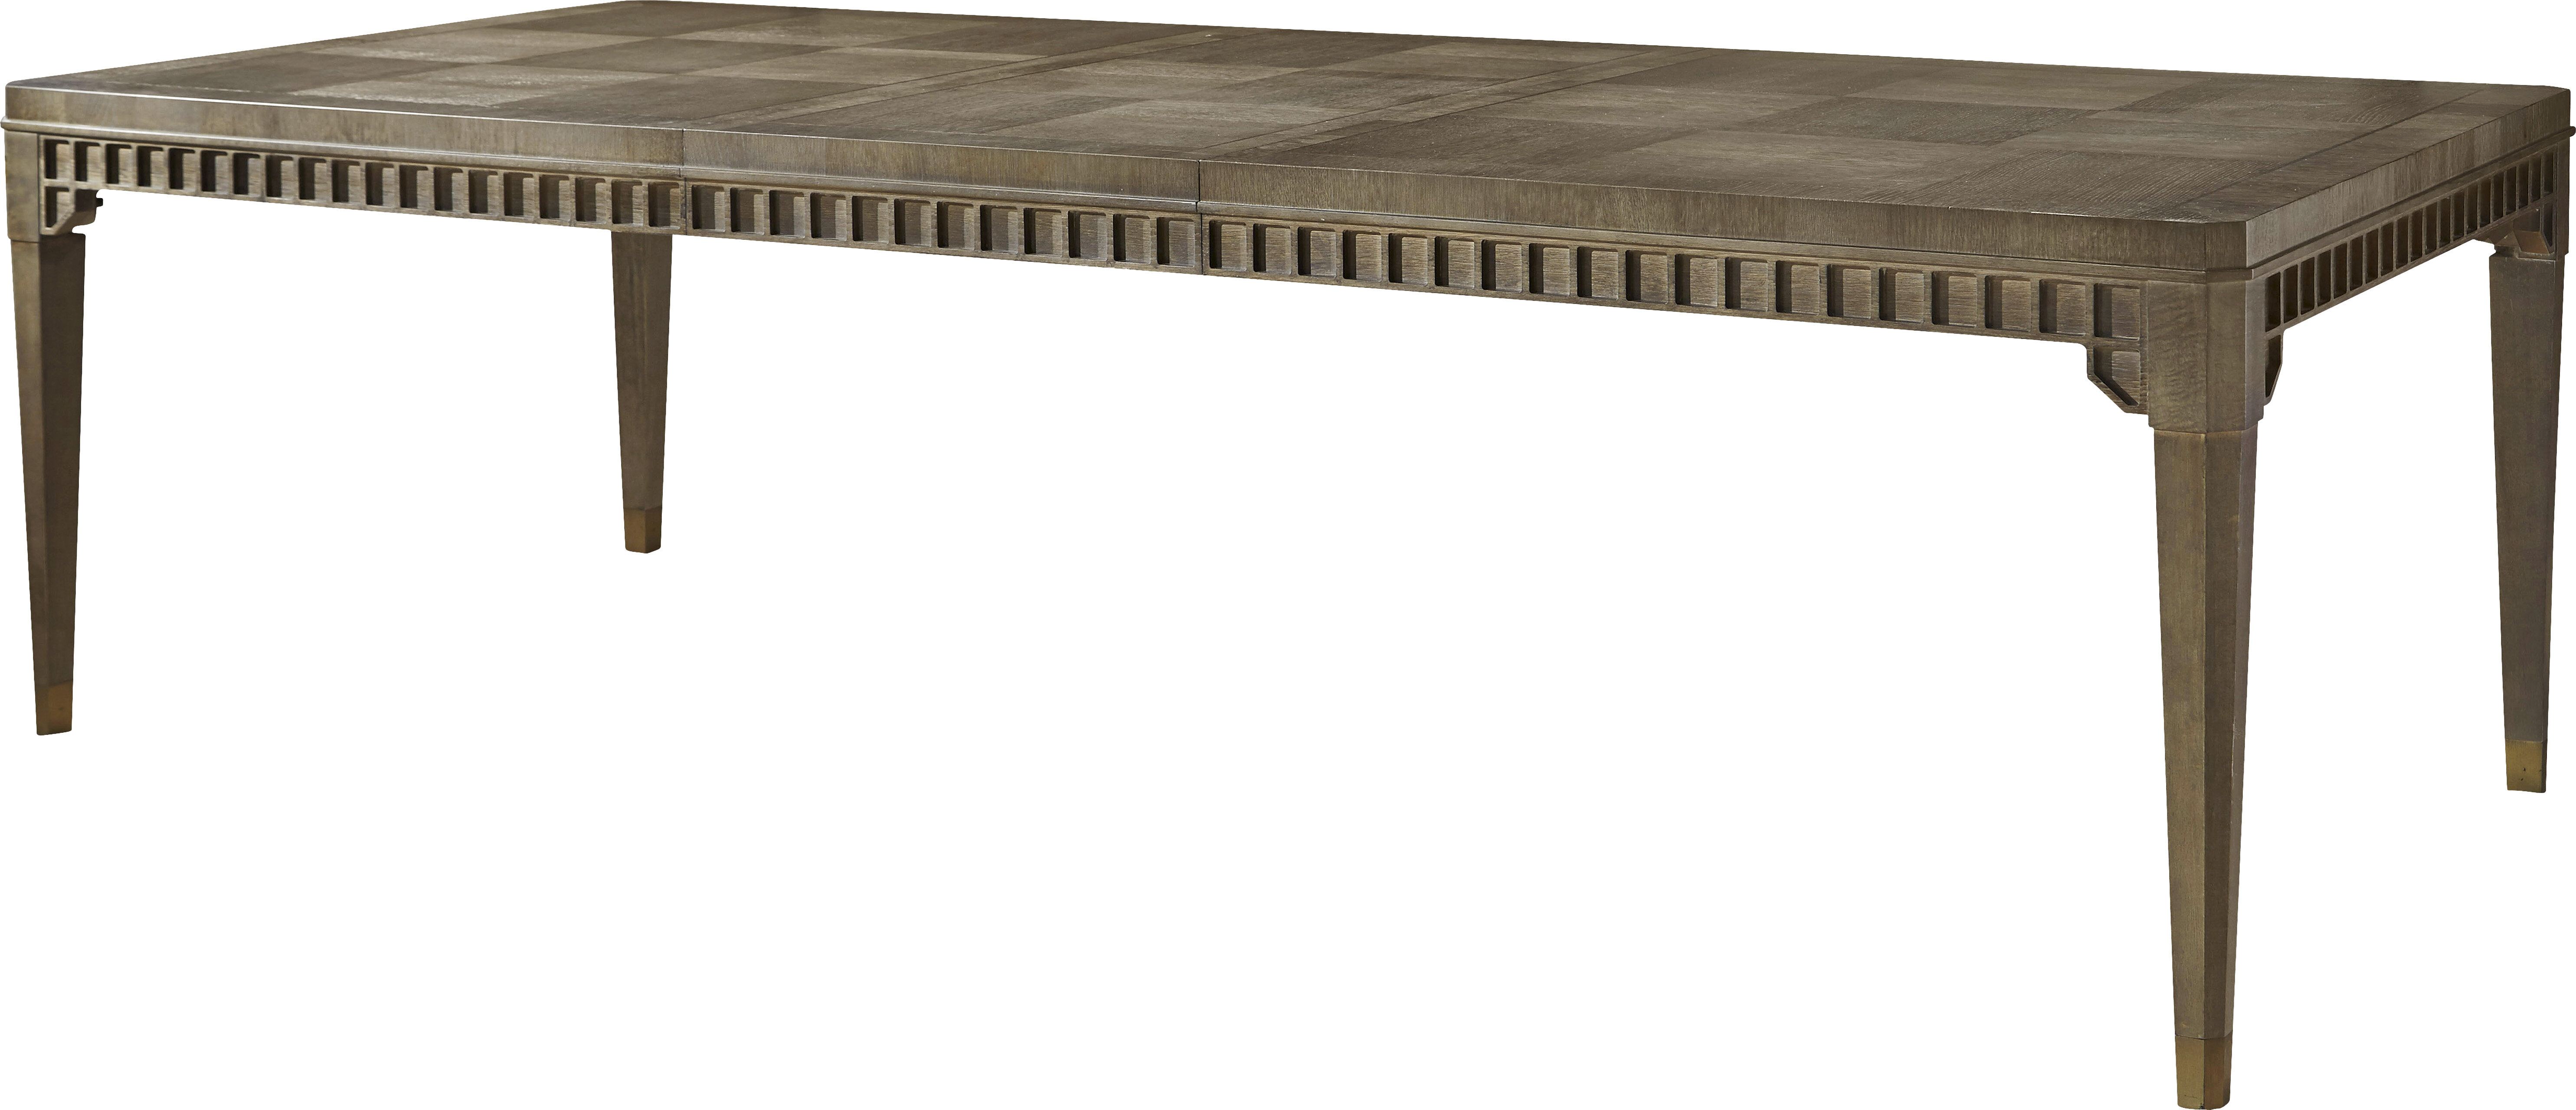 Taviers Extendable Dining Table